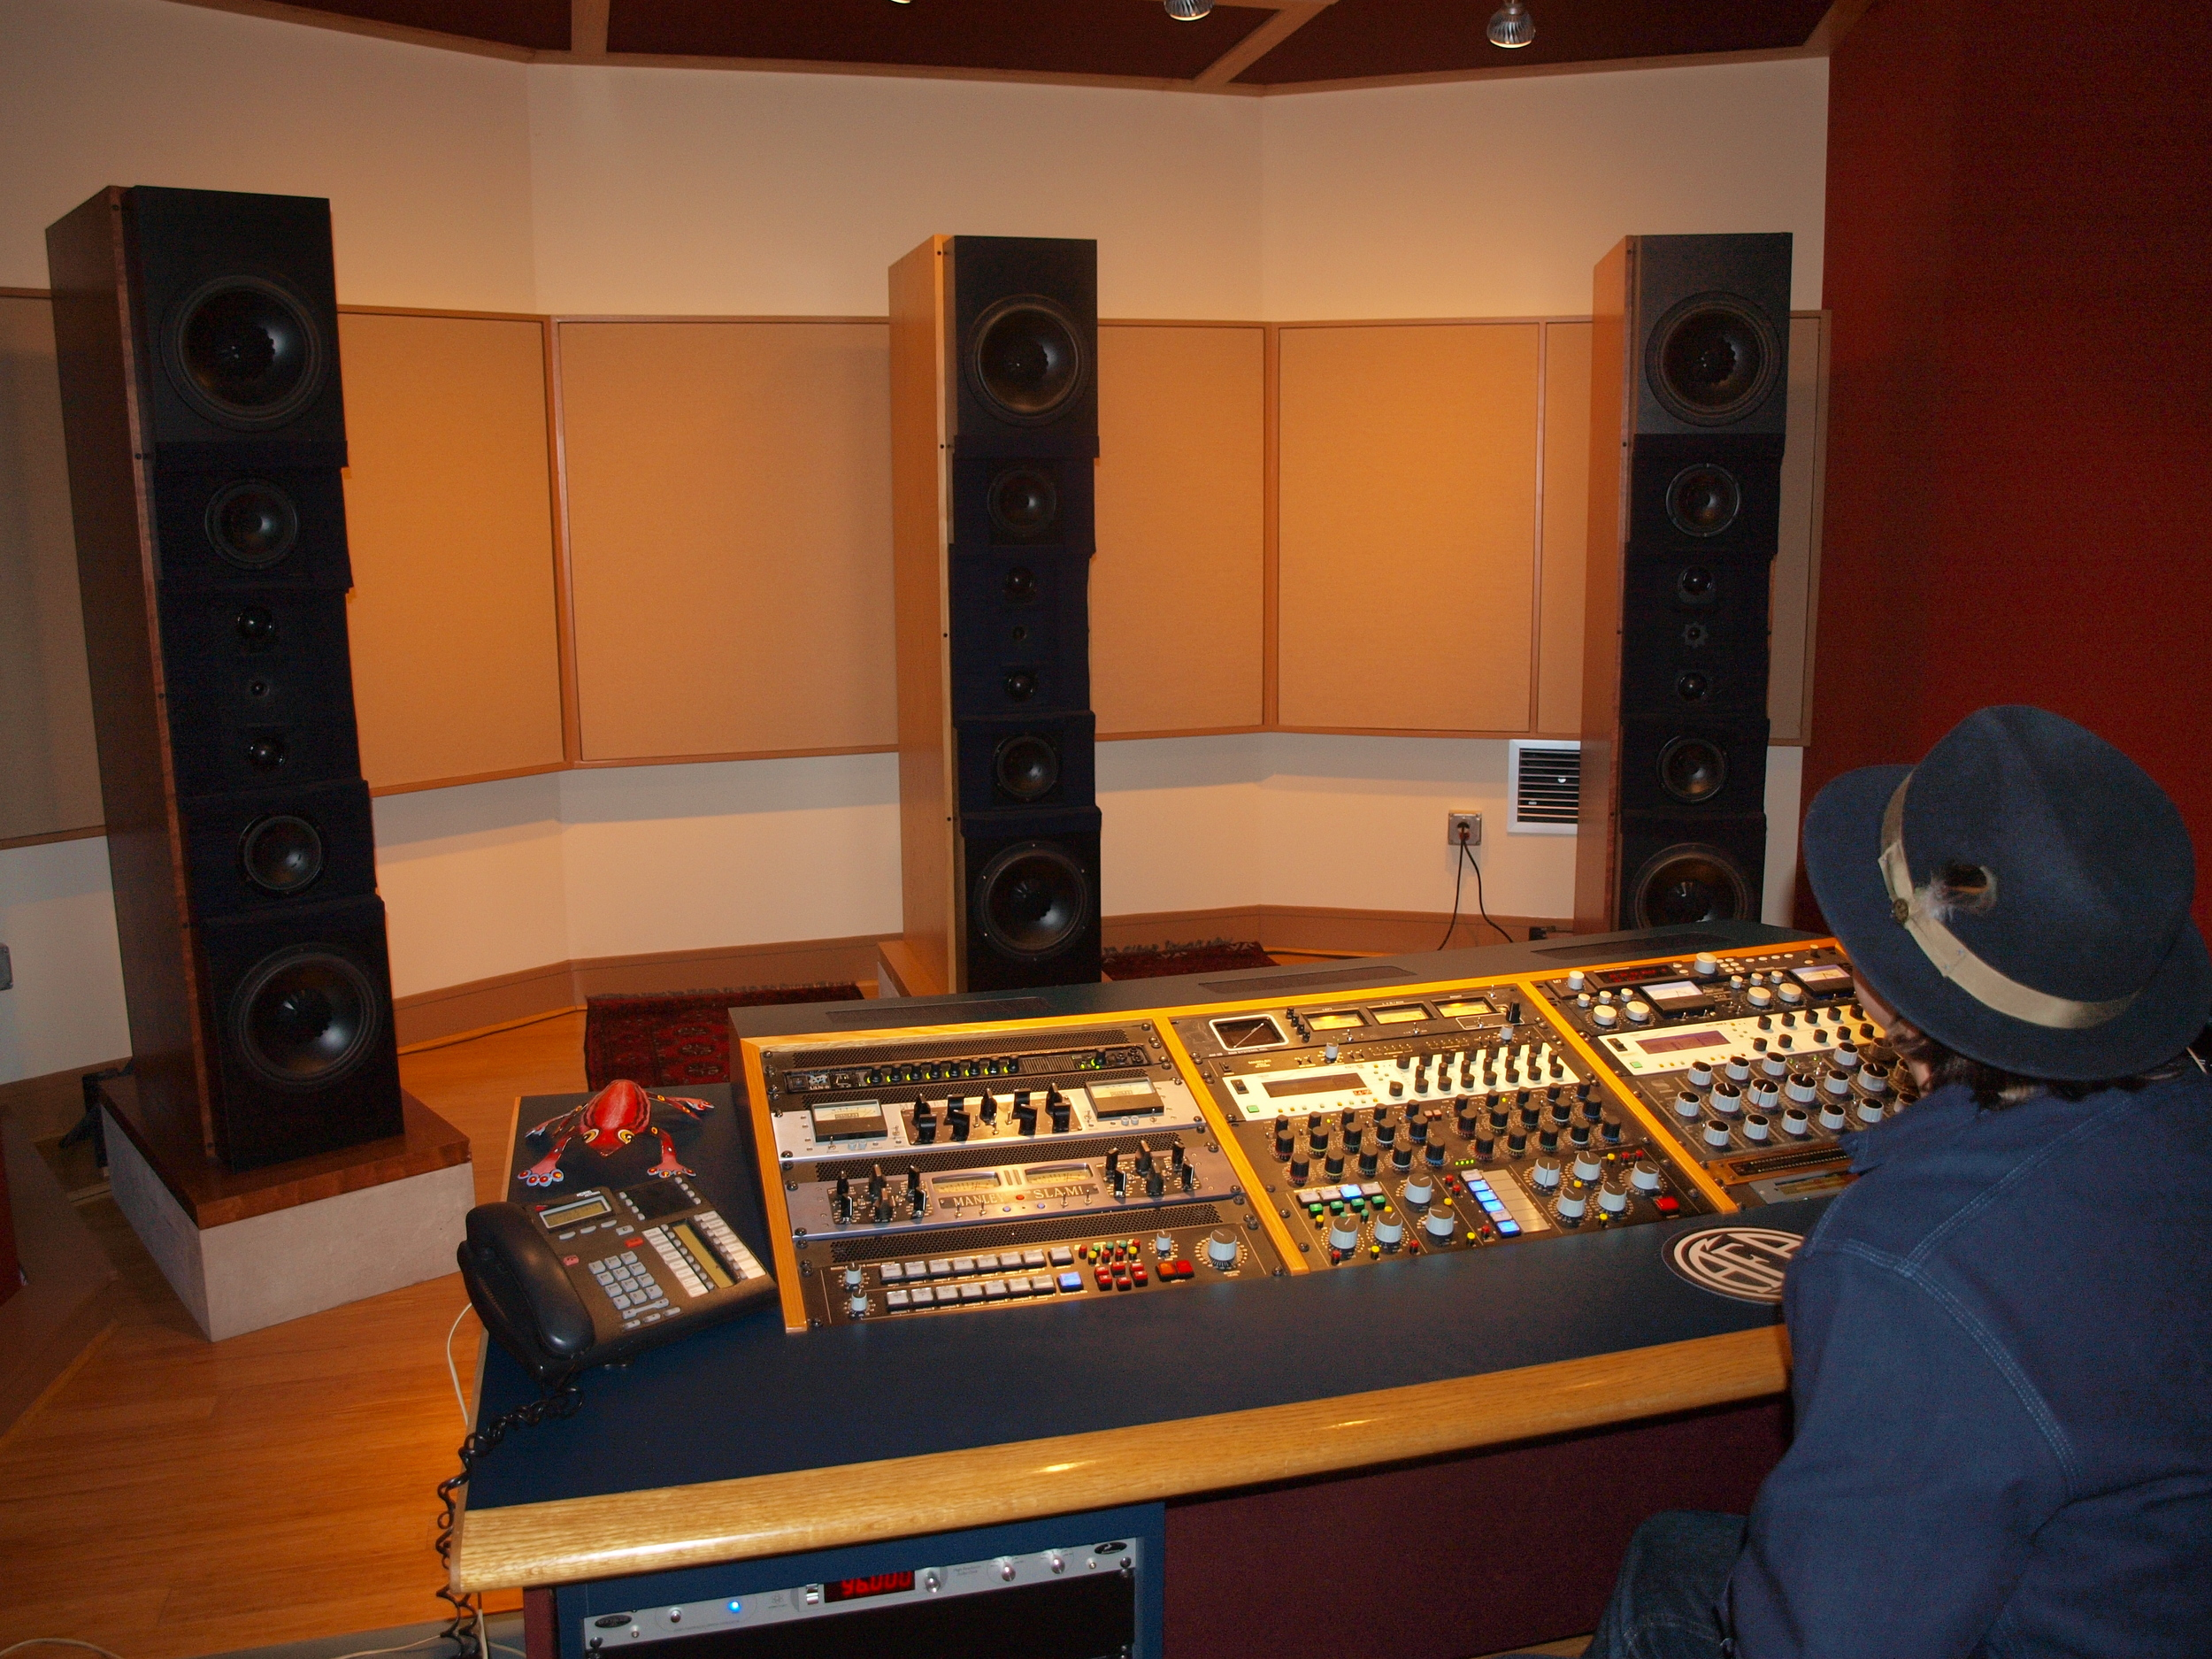 Checking out the mix